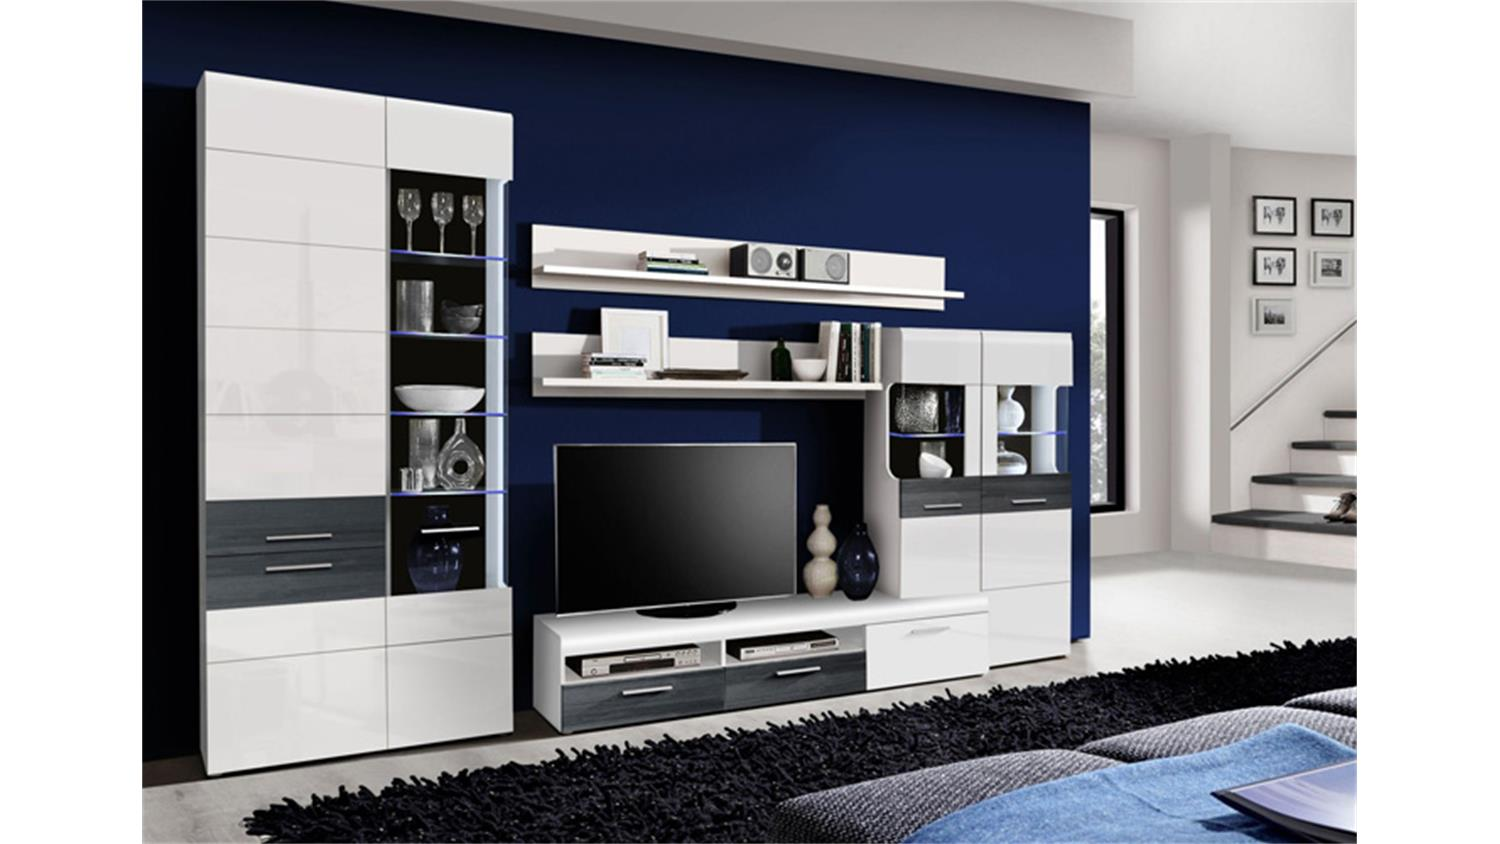 wohnwand cortino wei hochglanz schwarzeiche inkl led. Black Bedroom Furniture Sets. Home Design Ideas